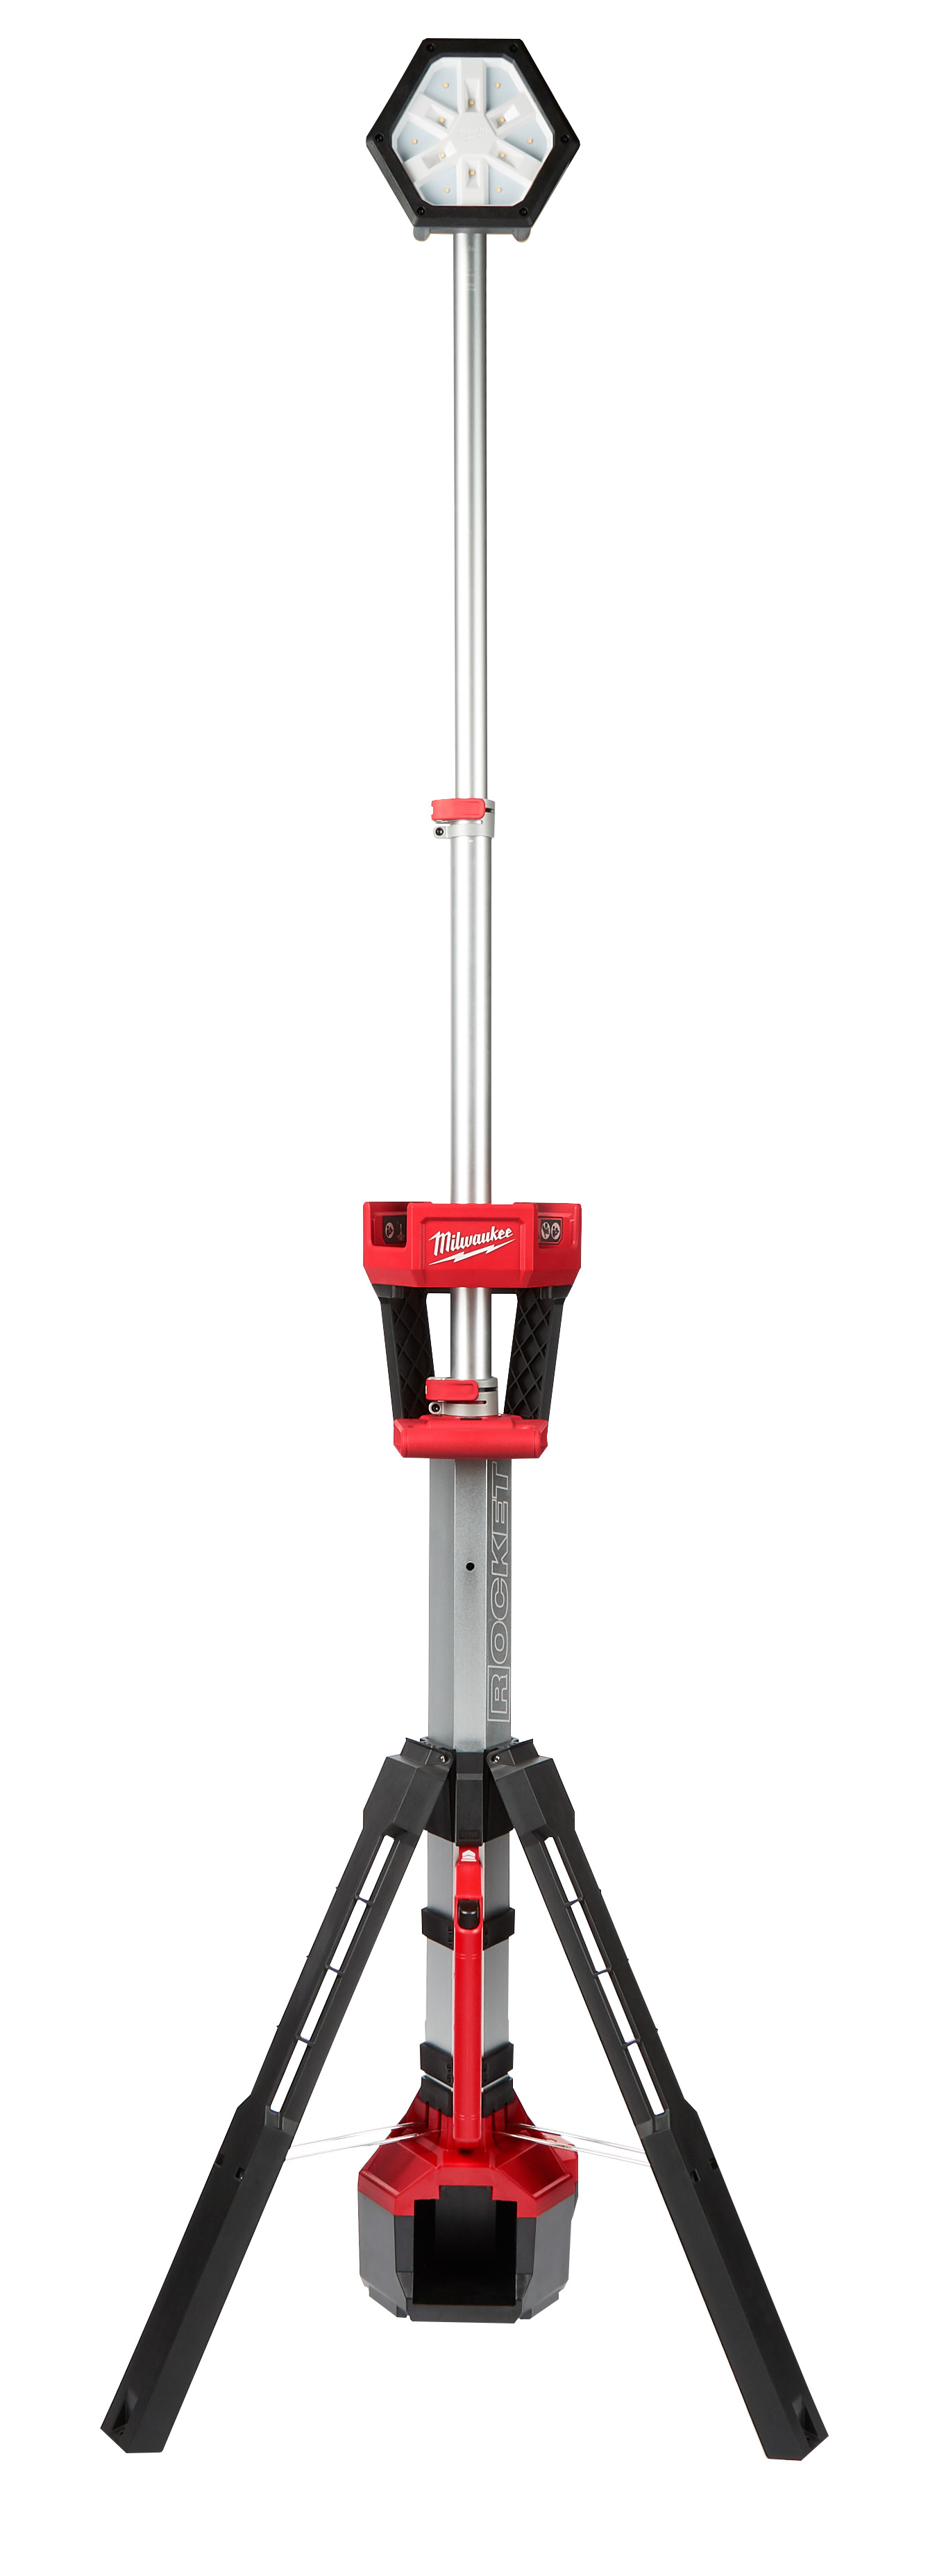 Milwaukee® ROVER™ 2114-21 USB Rechargeable Pivoting Flood Light, LED Lamp